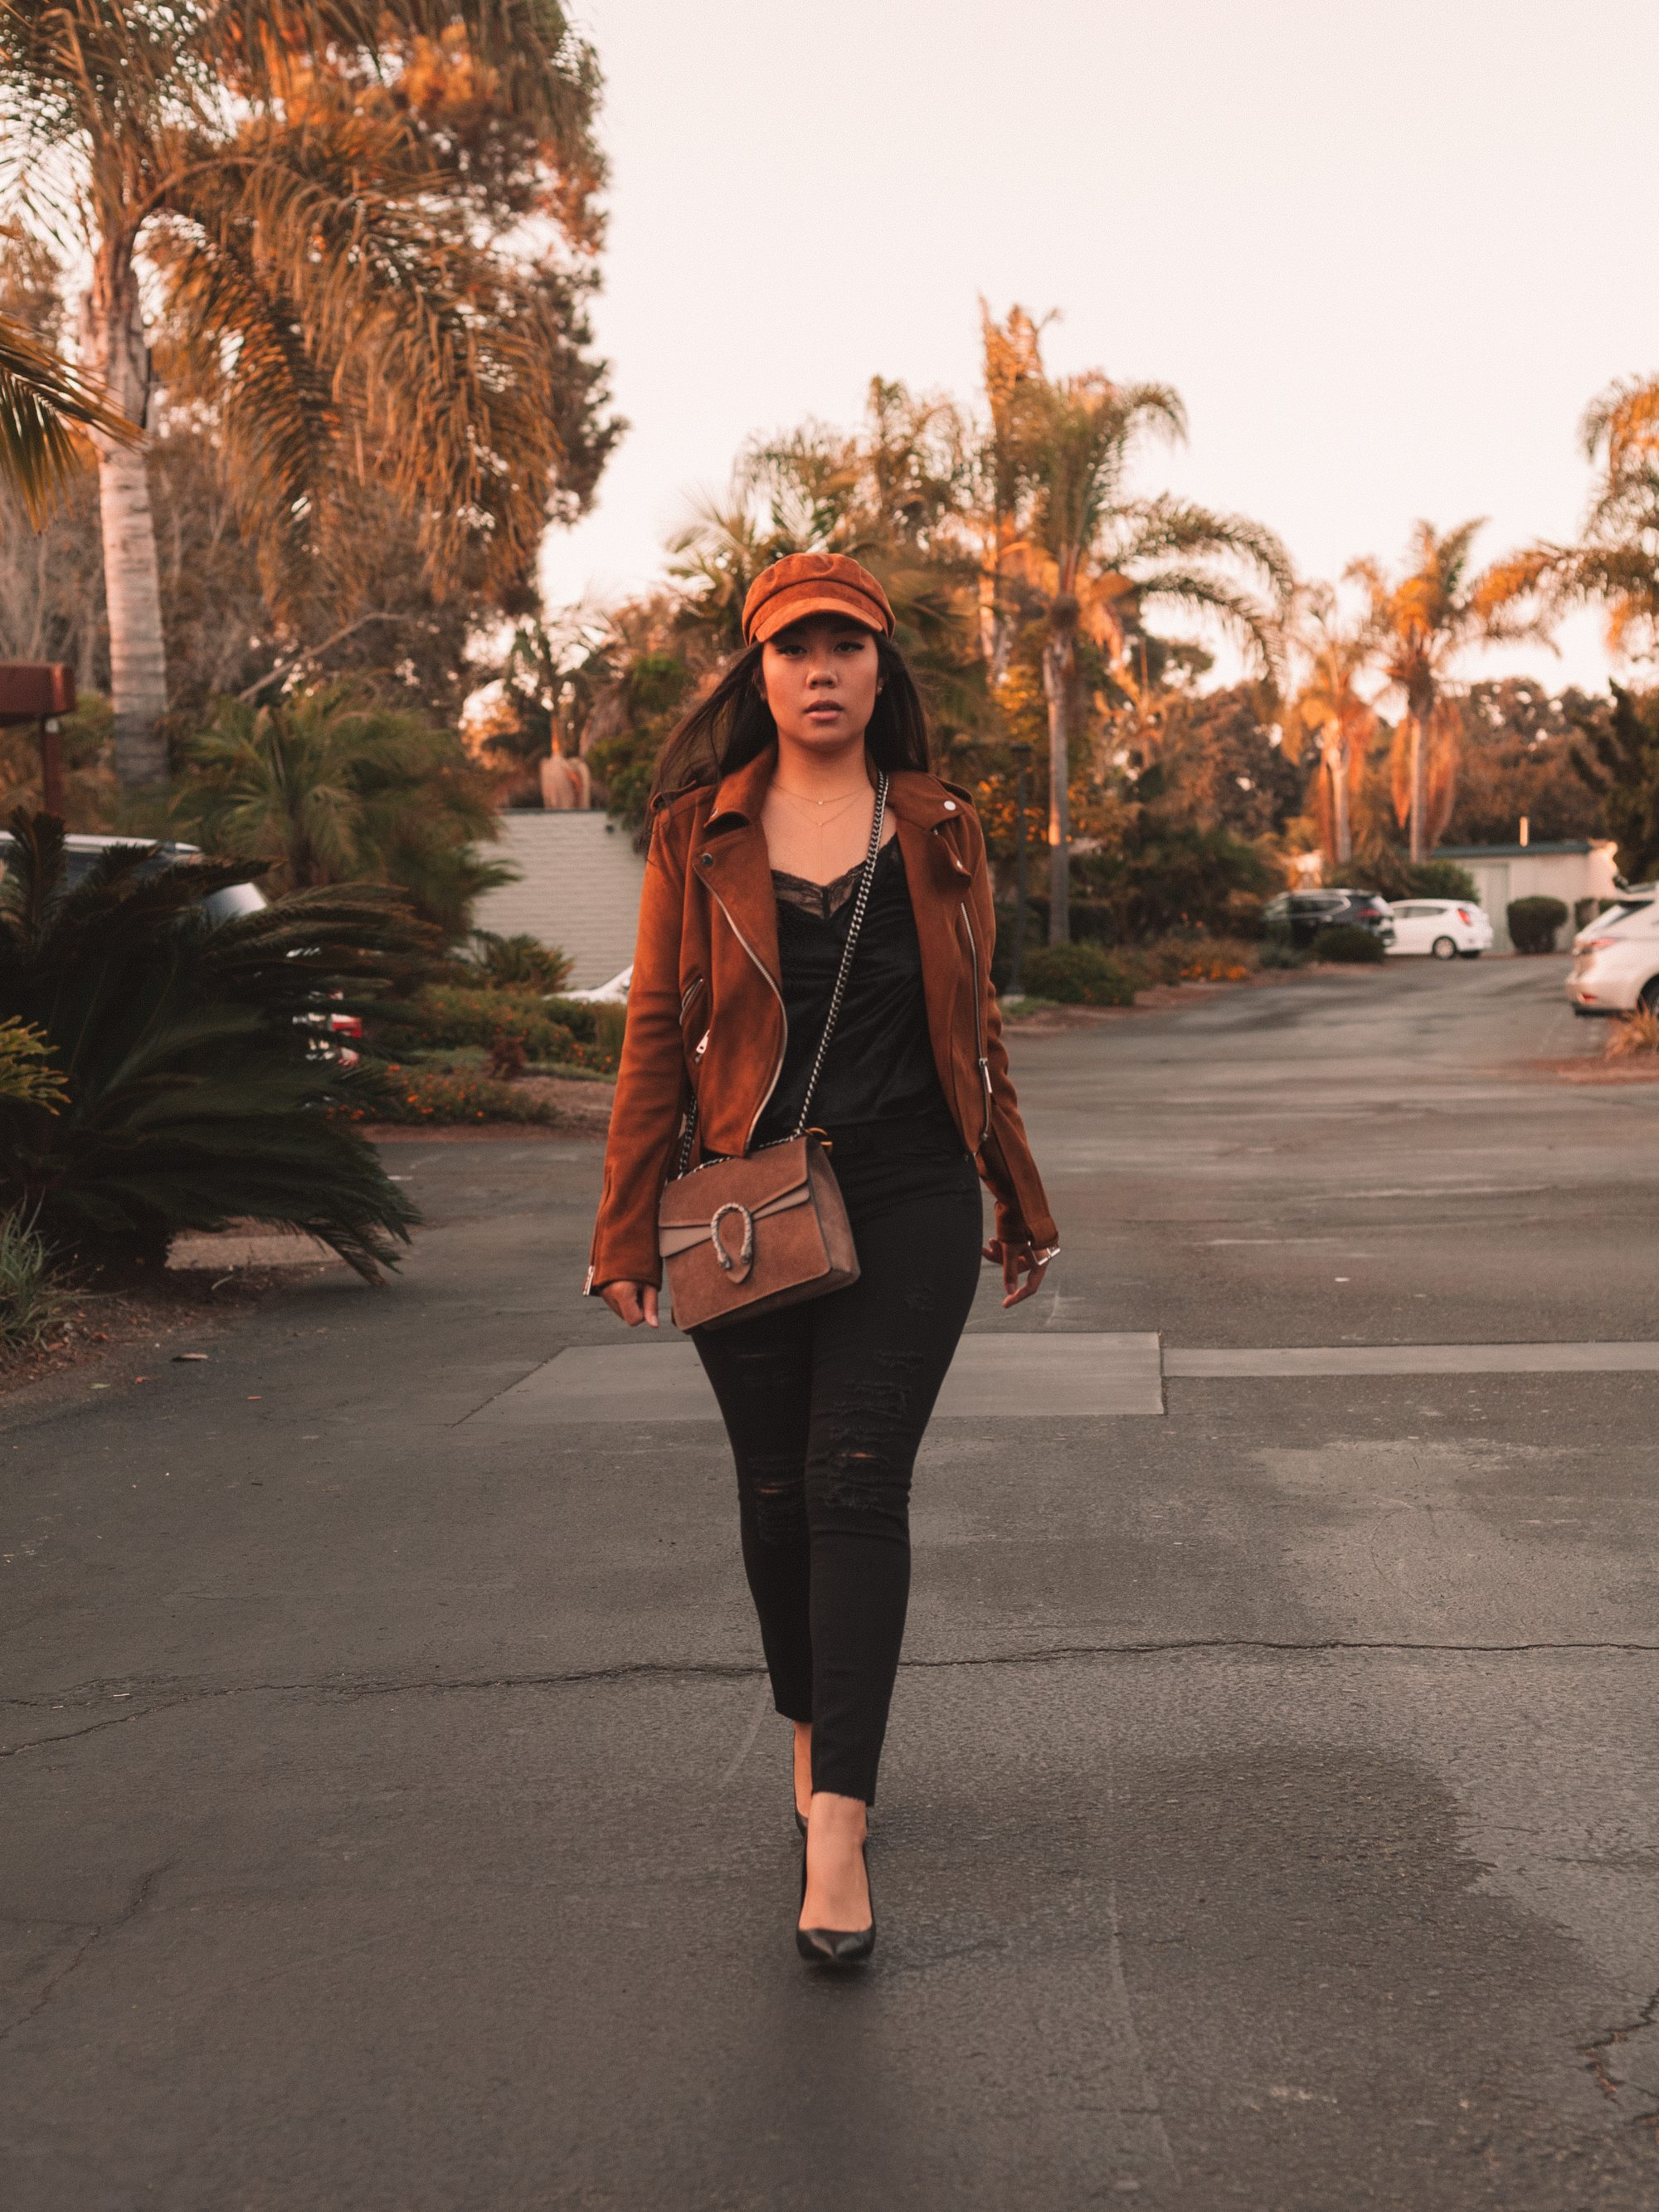 Although regular leather is more durable, you can always try a suede jacket to switch up the texture of the jacket. Suede offers a nice muted tone to colored jackets, so it's a great finish to try a new color if you prefer a more subtle look. - www.theballeronabudget.com